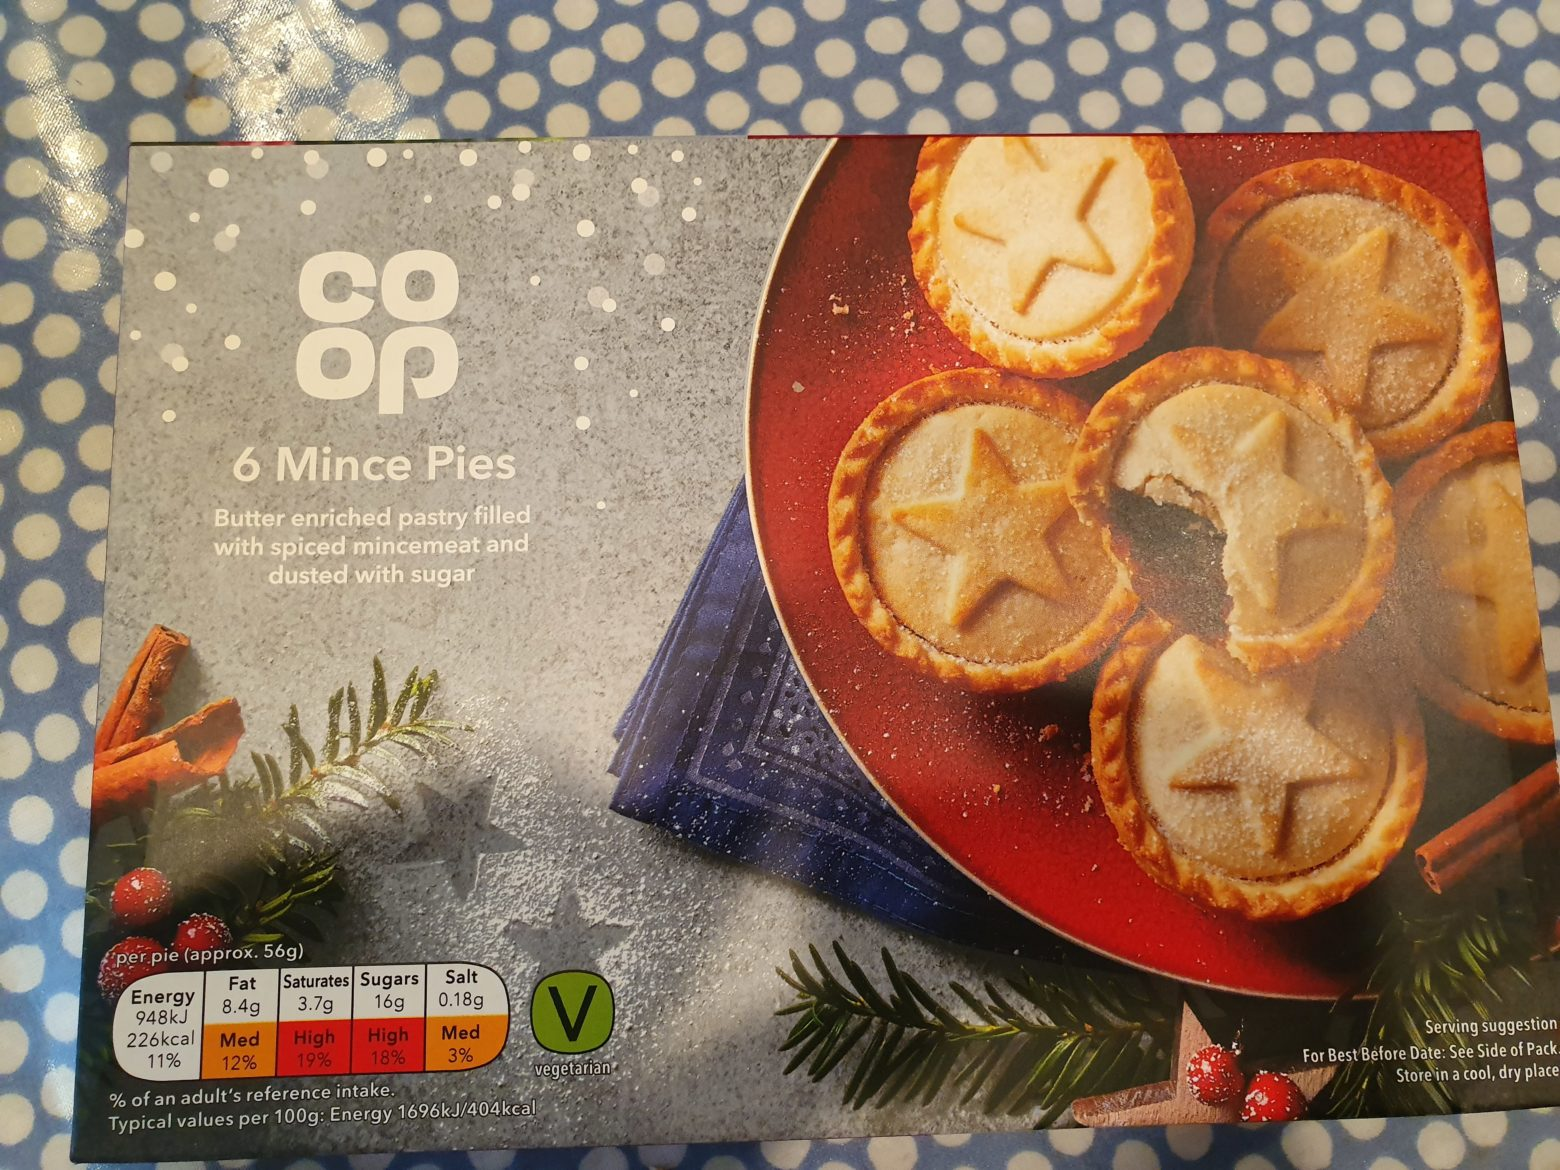 Co-op Mince Pie Review 2019